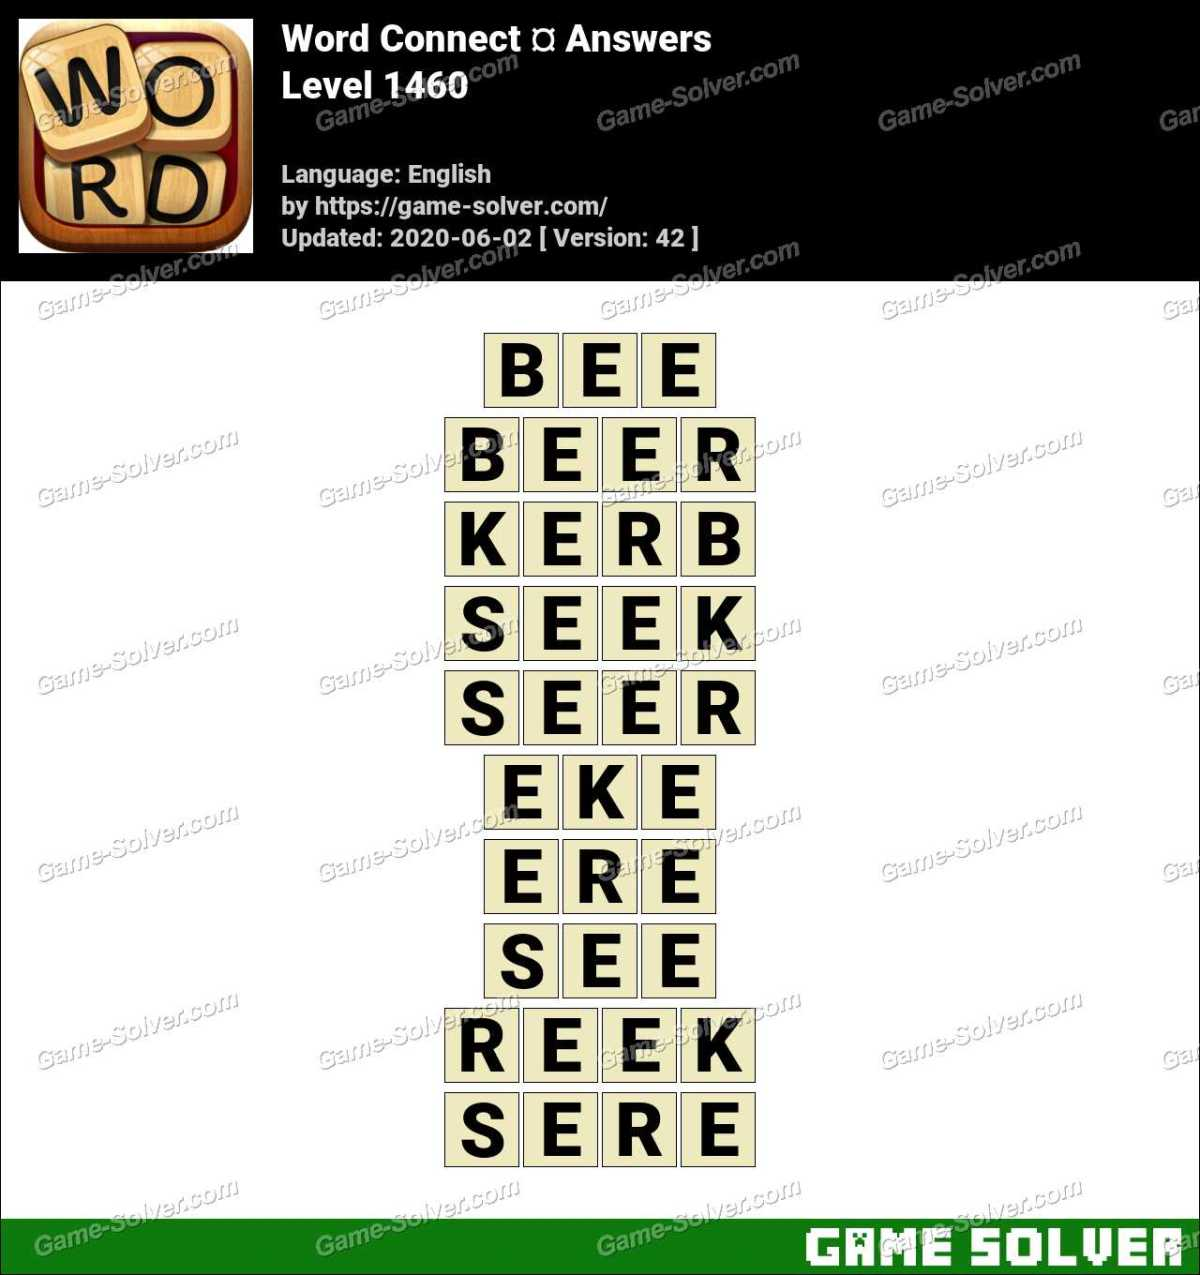 Word Connect Level 1460 Answers